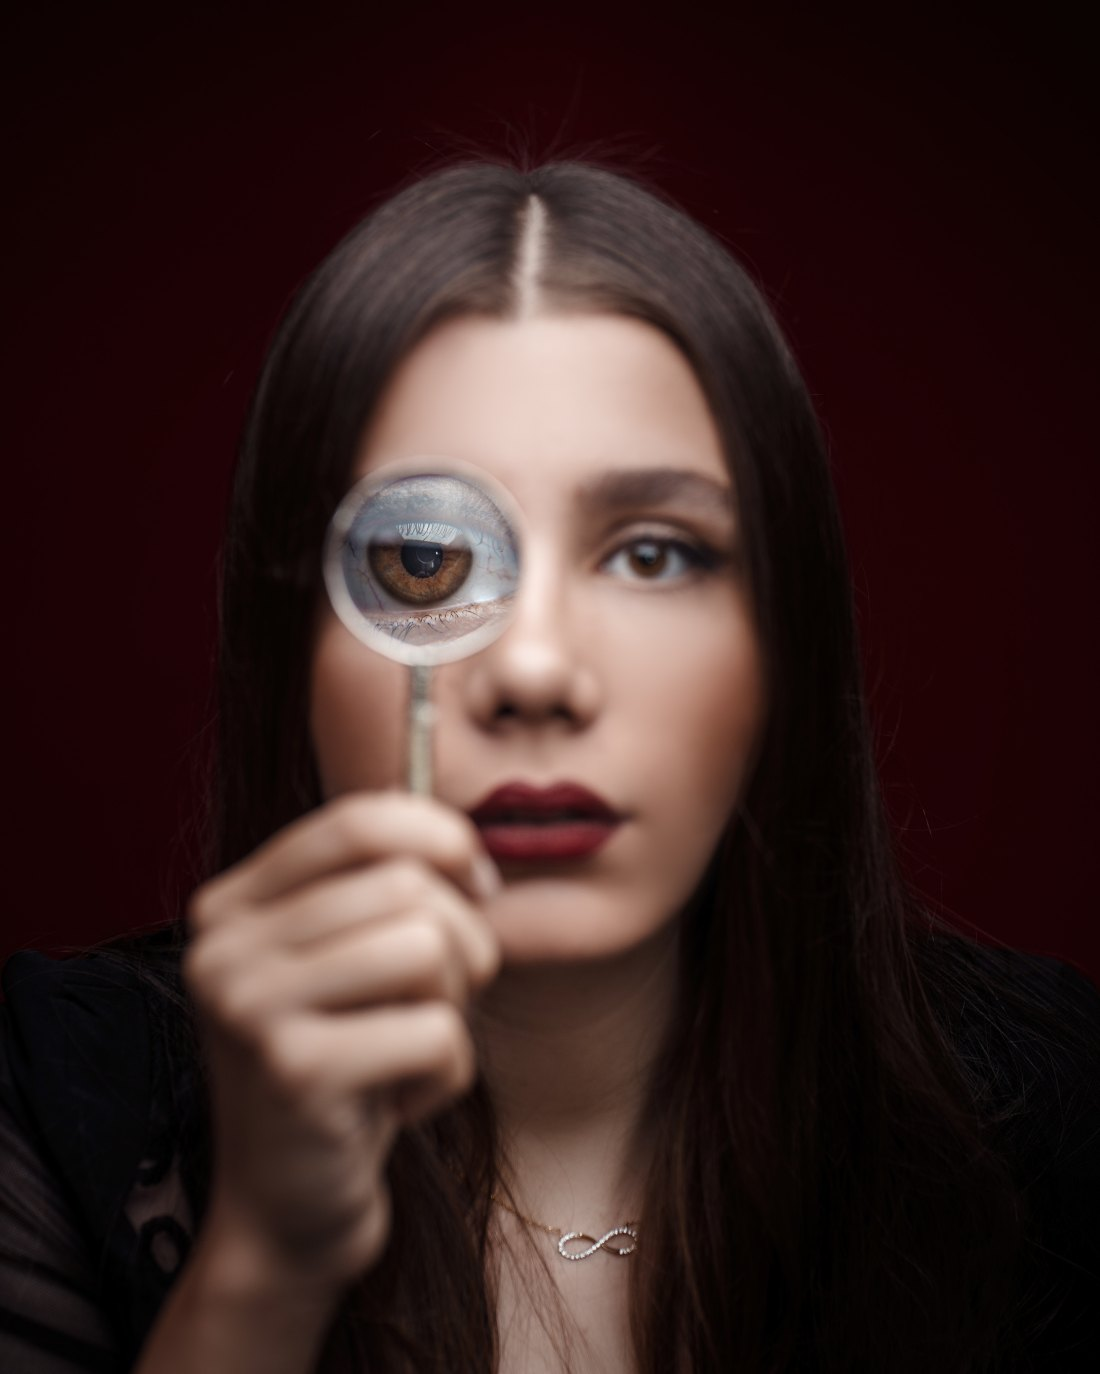 A woman holds a magnifying glass up to her eye